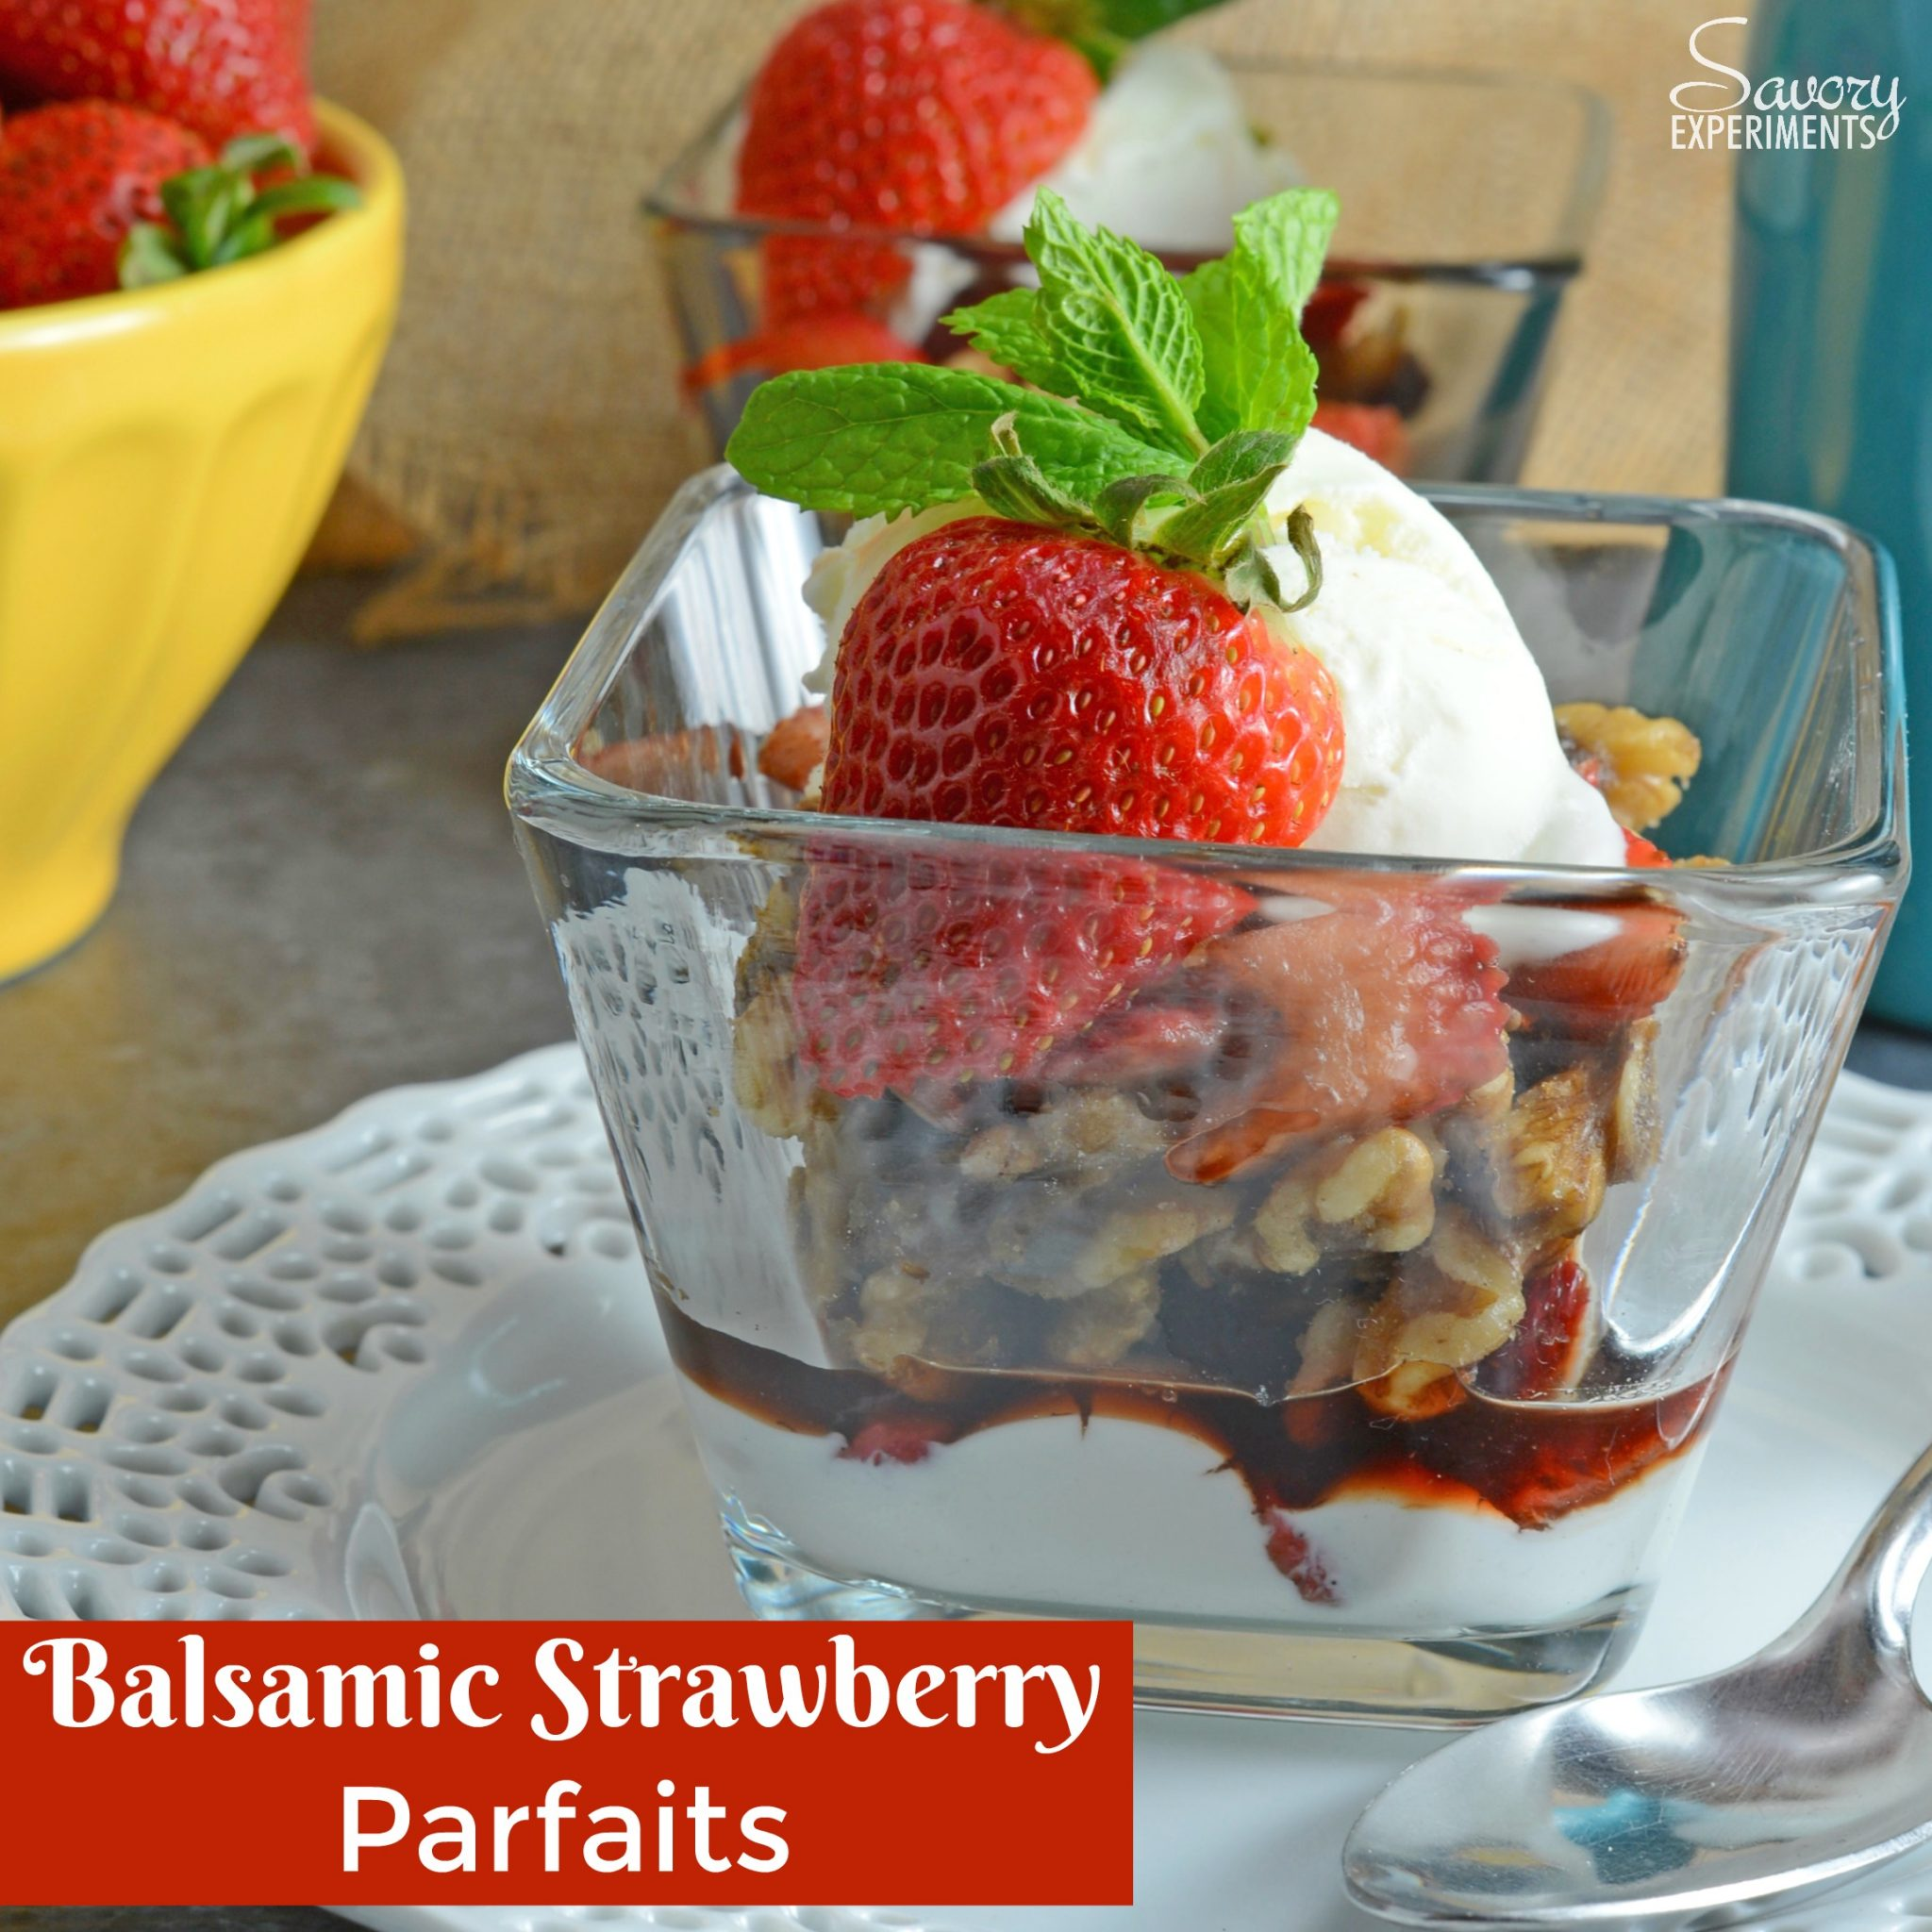 Balsamic Strawberry Yogurt Parfait - A Delicious Fruit Parfait Recipe